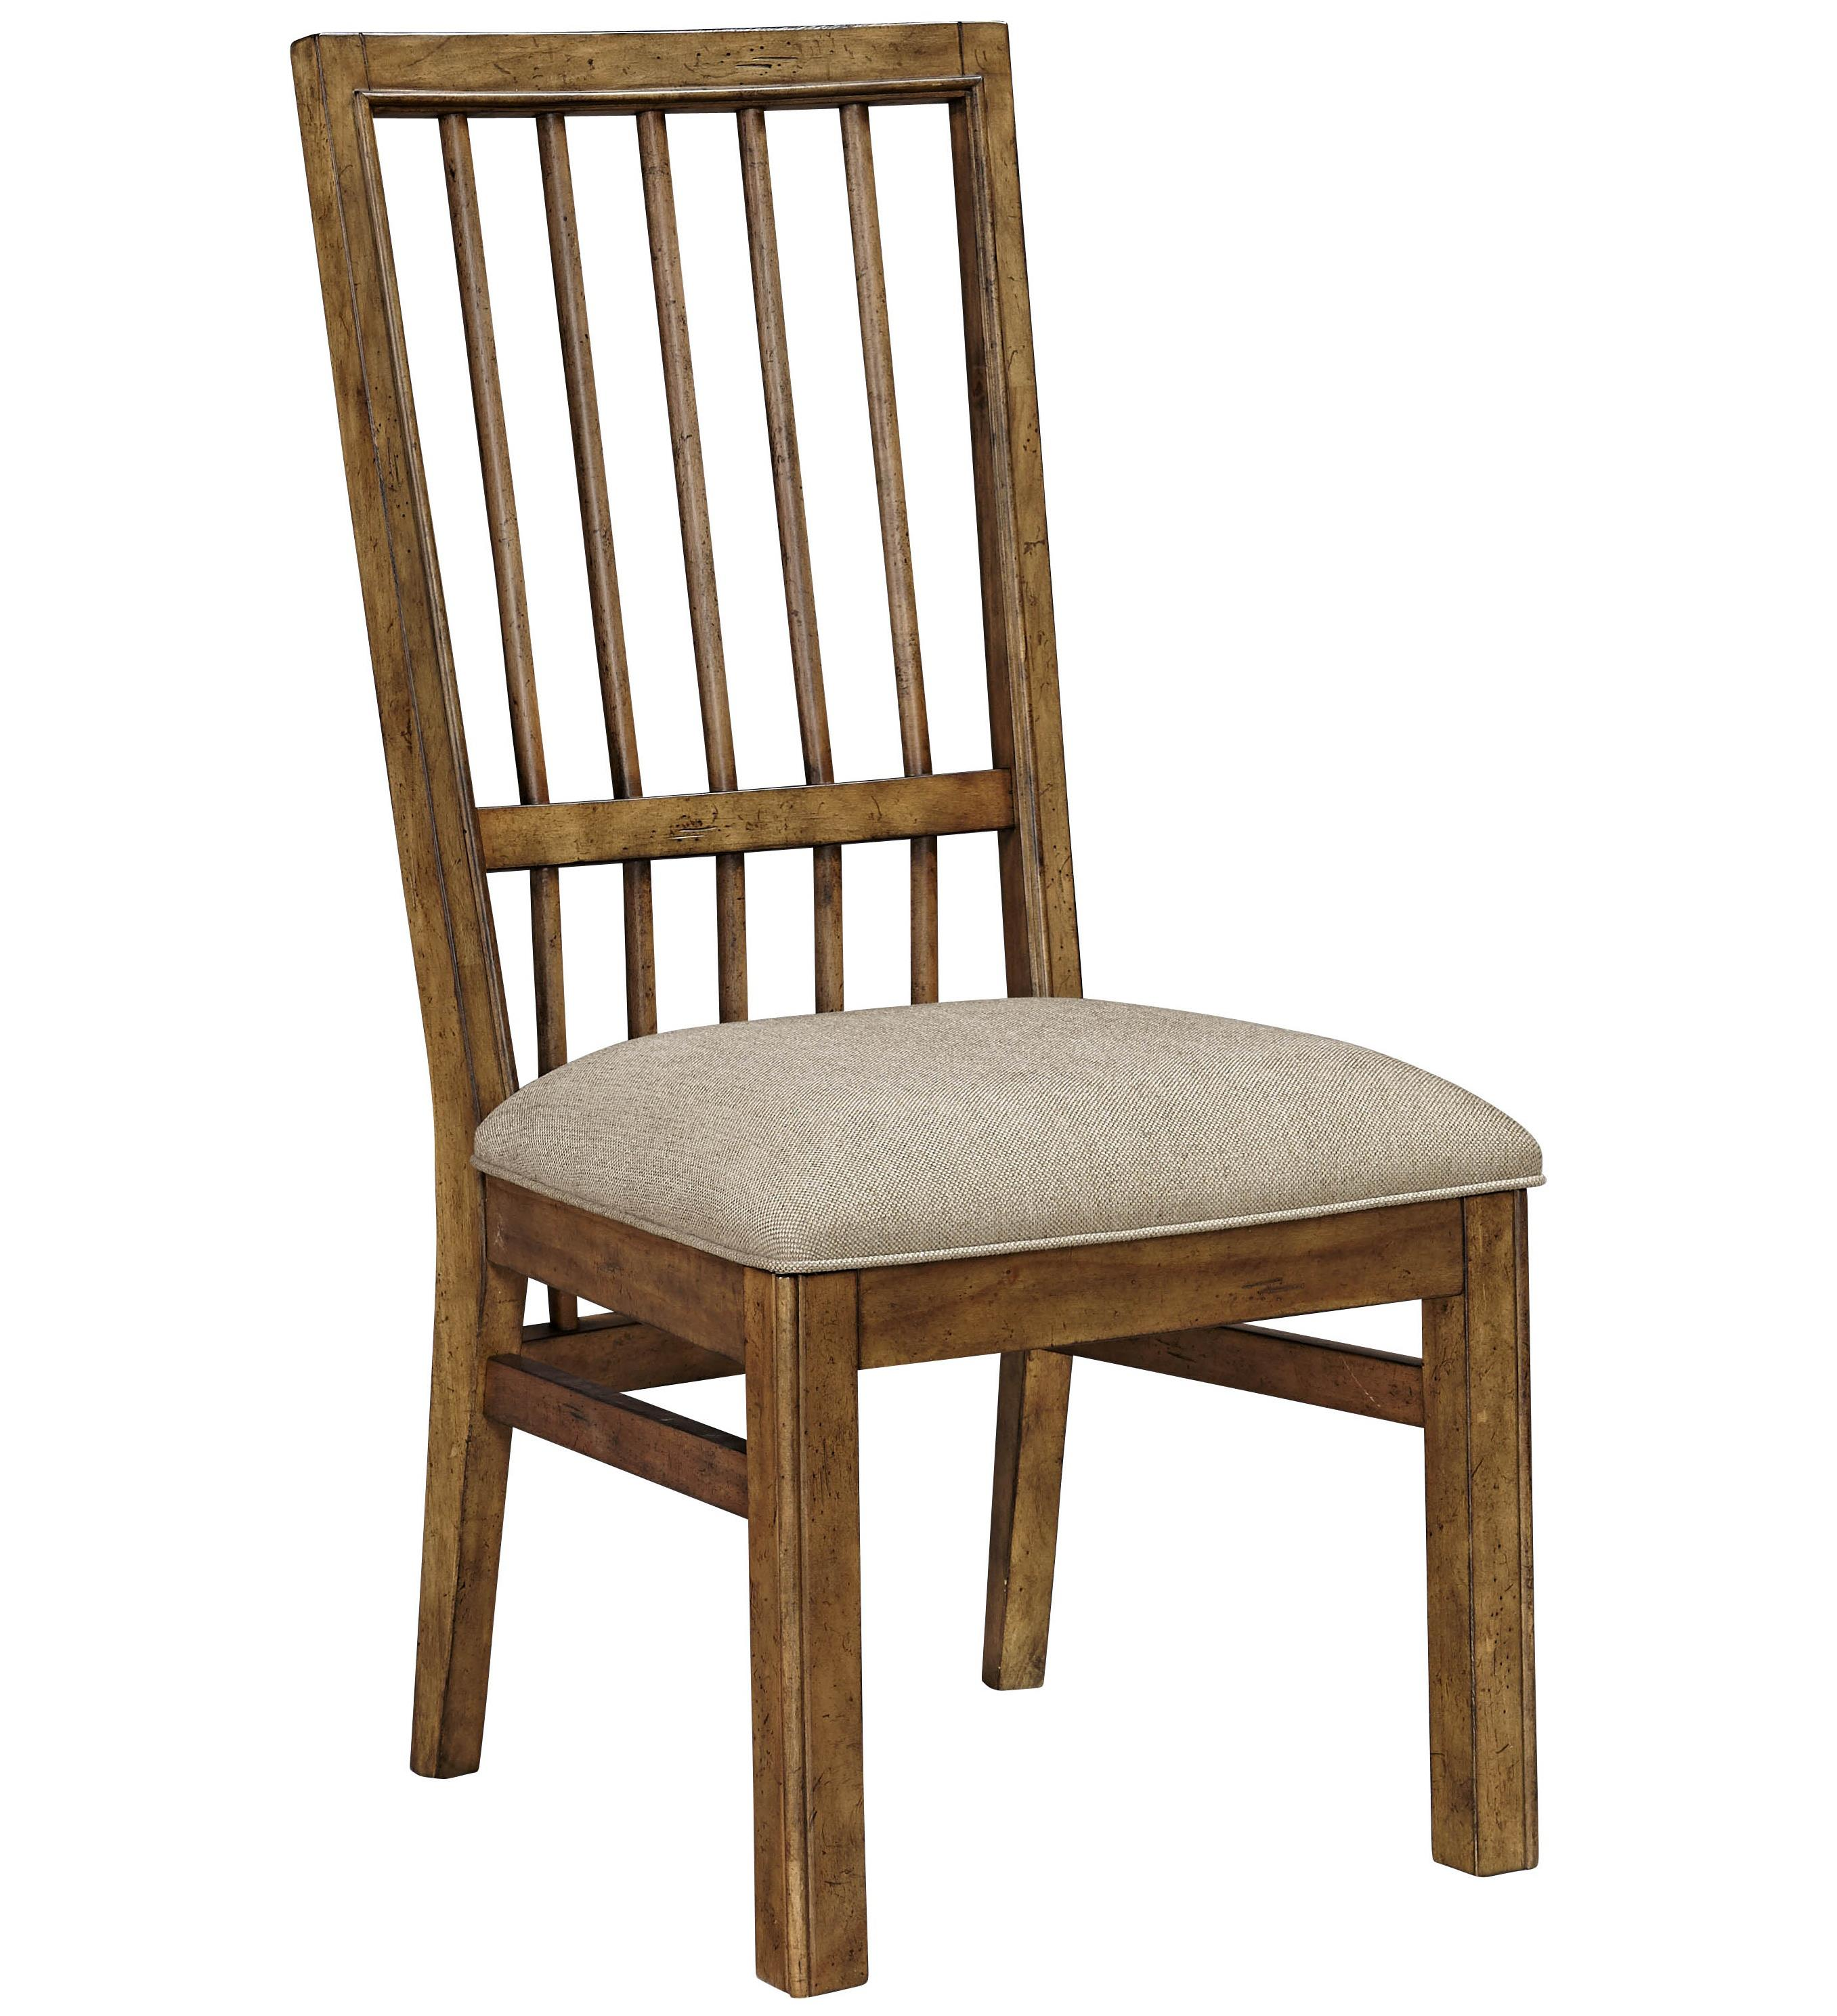 Broyhill Furniture Bethany Square Upholstered Seat Side Chair - Item Number: 4930-581